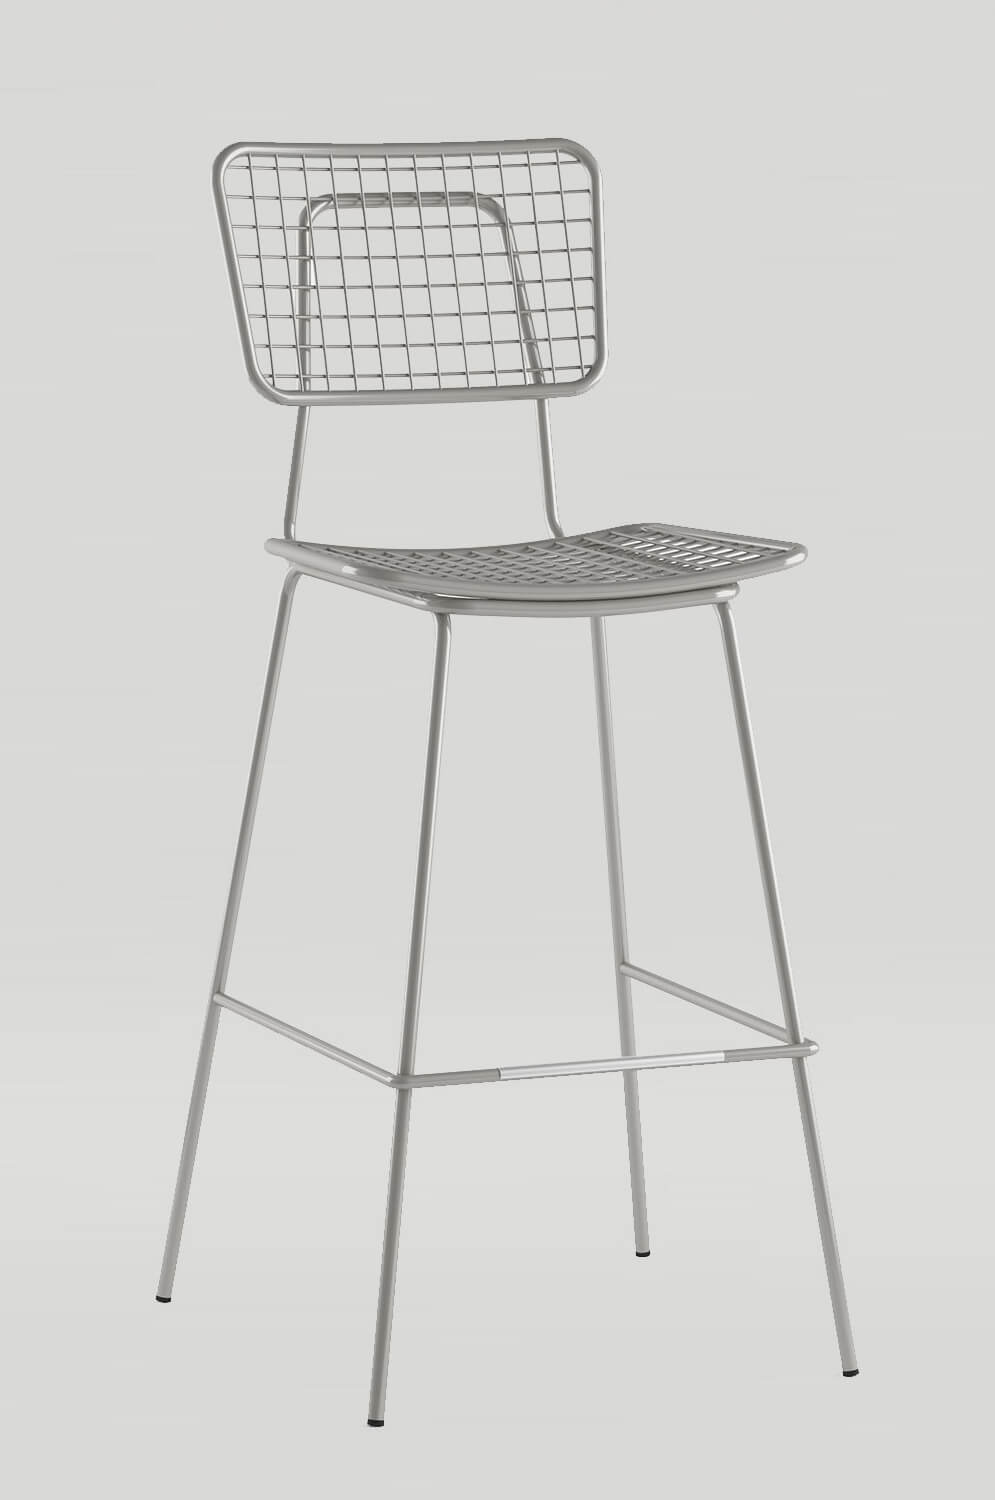 Outstanding Opla Outdoor Stool With Back Unemploymentrelief Wooden Chair Designs For Living Room Unemploymentrelieforg